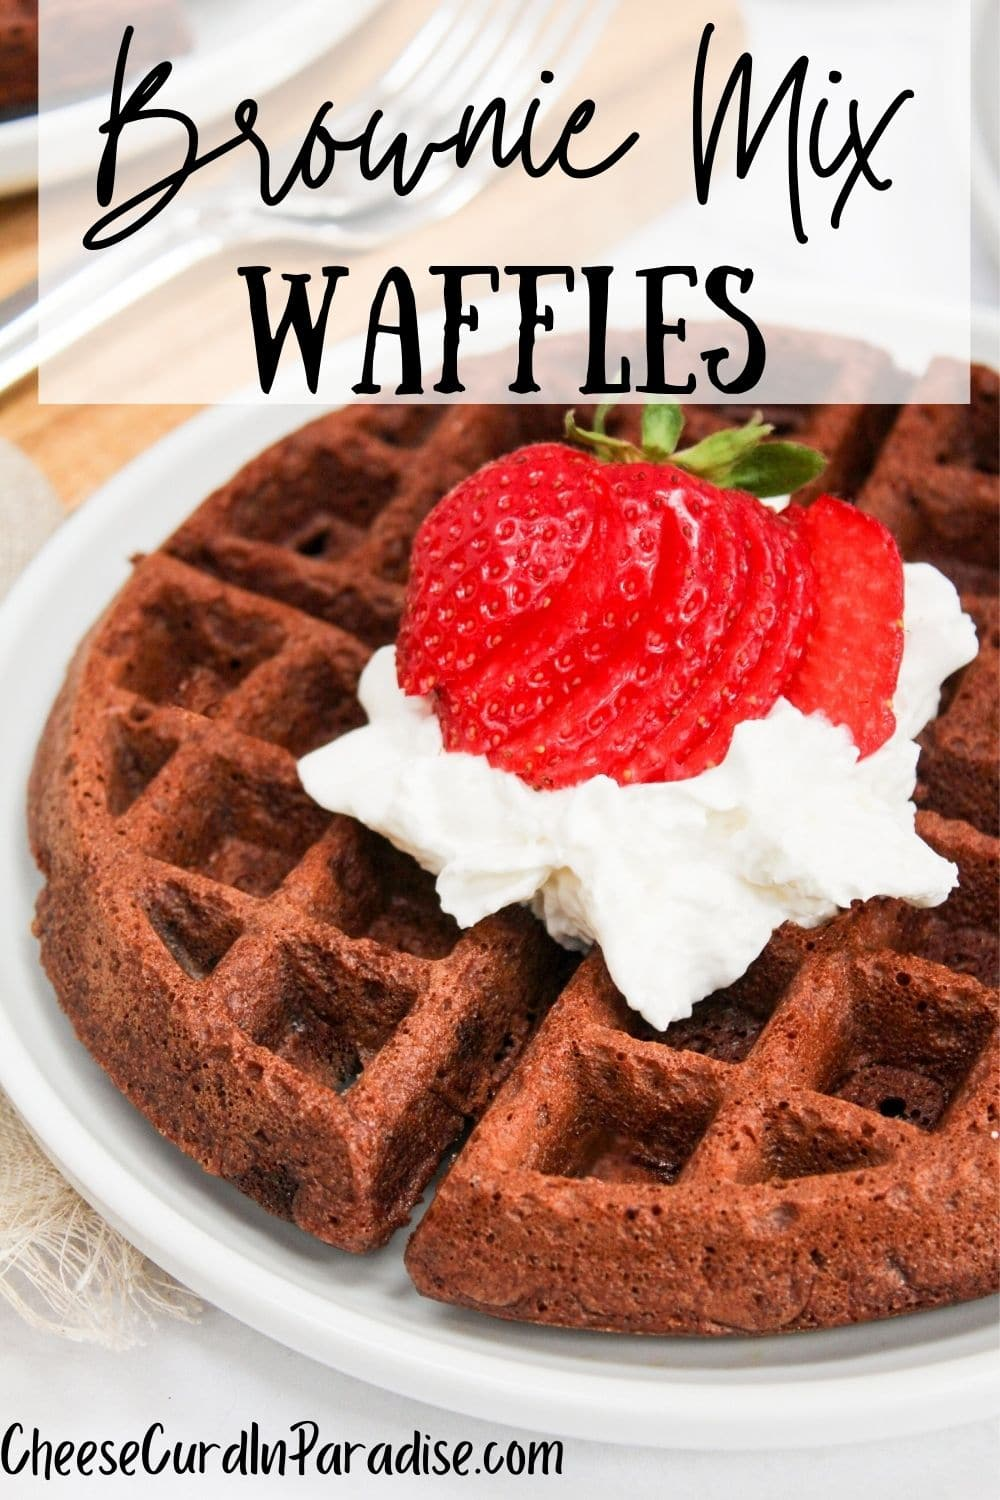 Brownie mix waffles with whipped cream and strawberries on top on a white plate